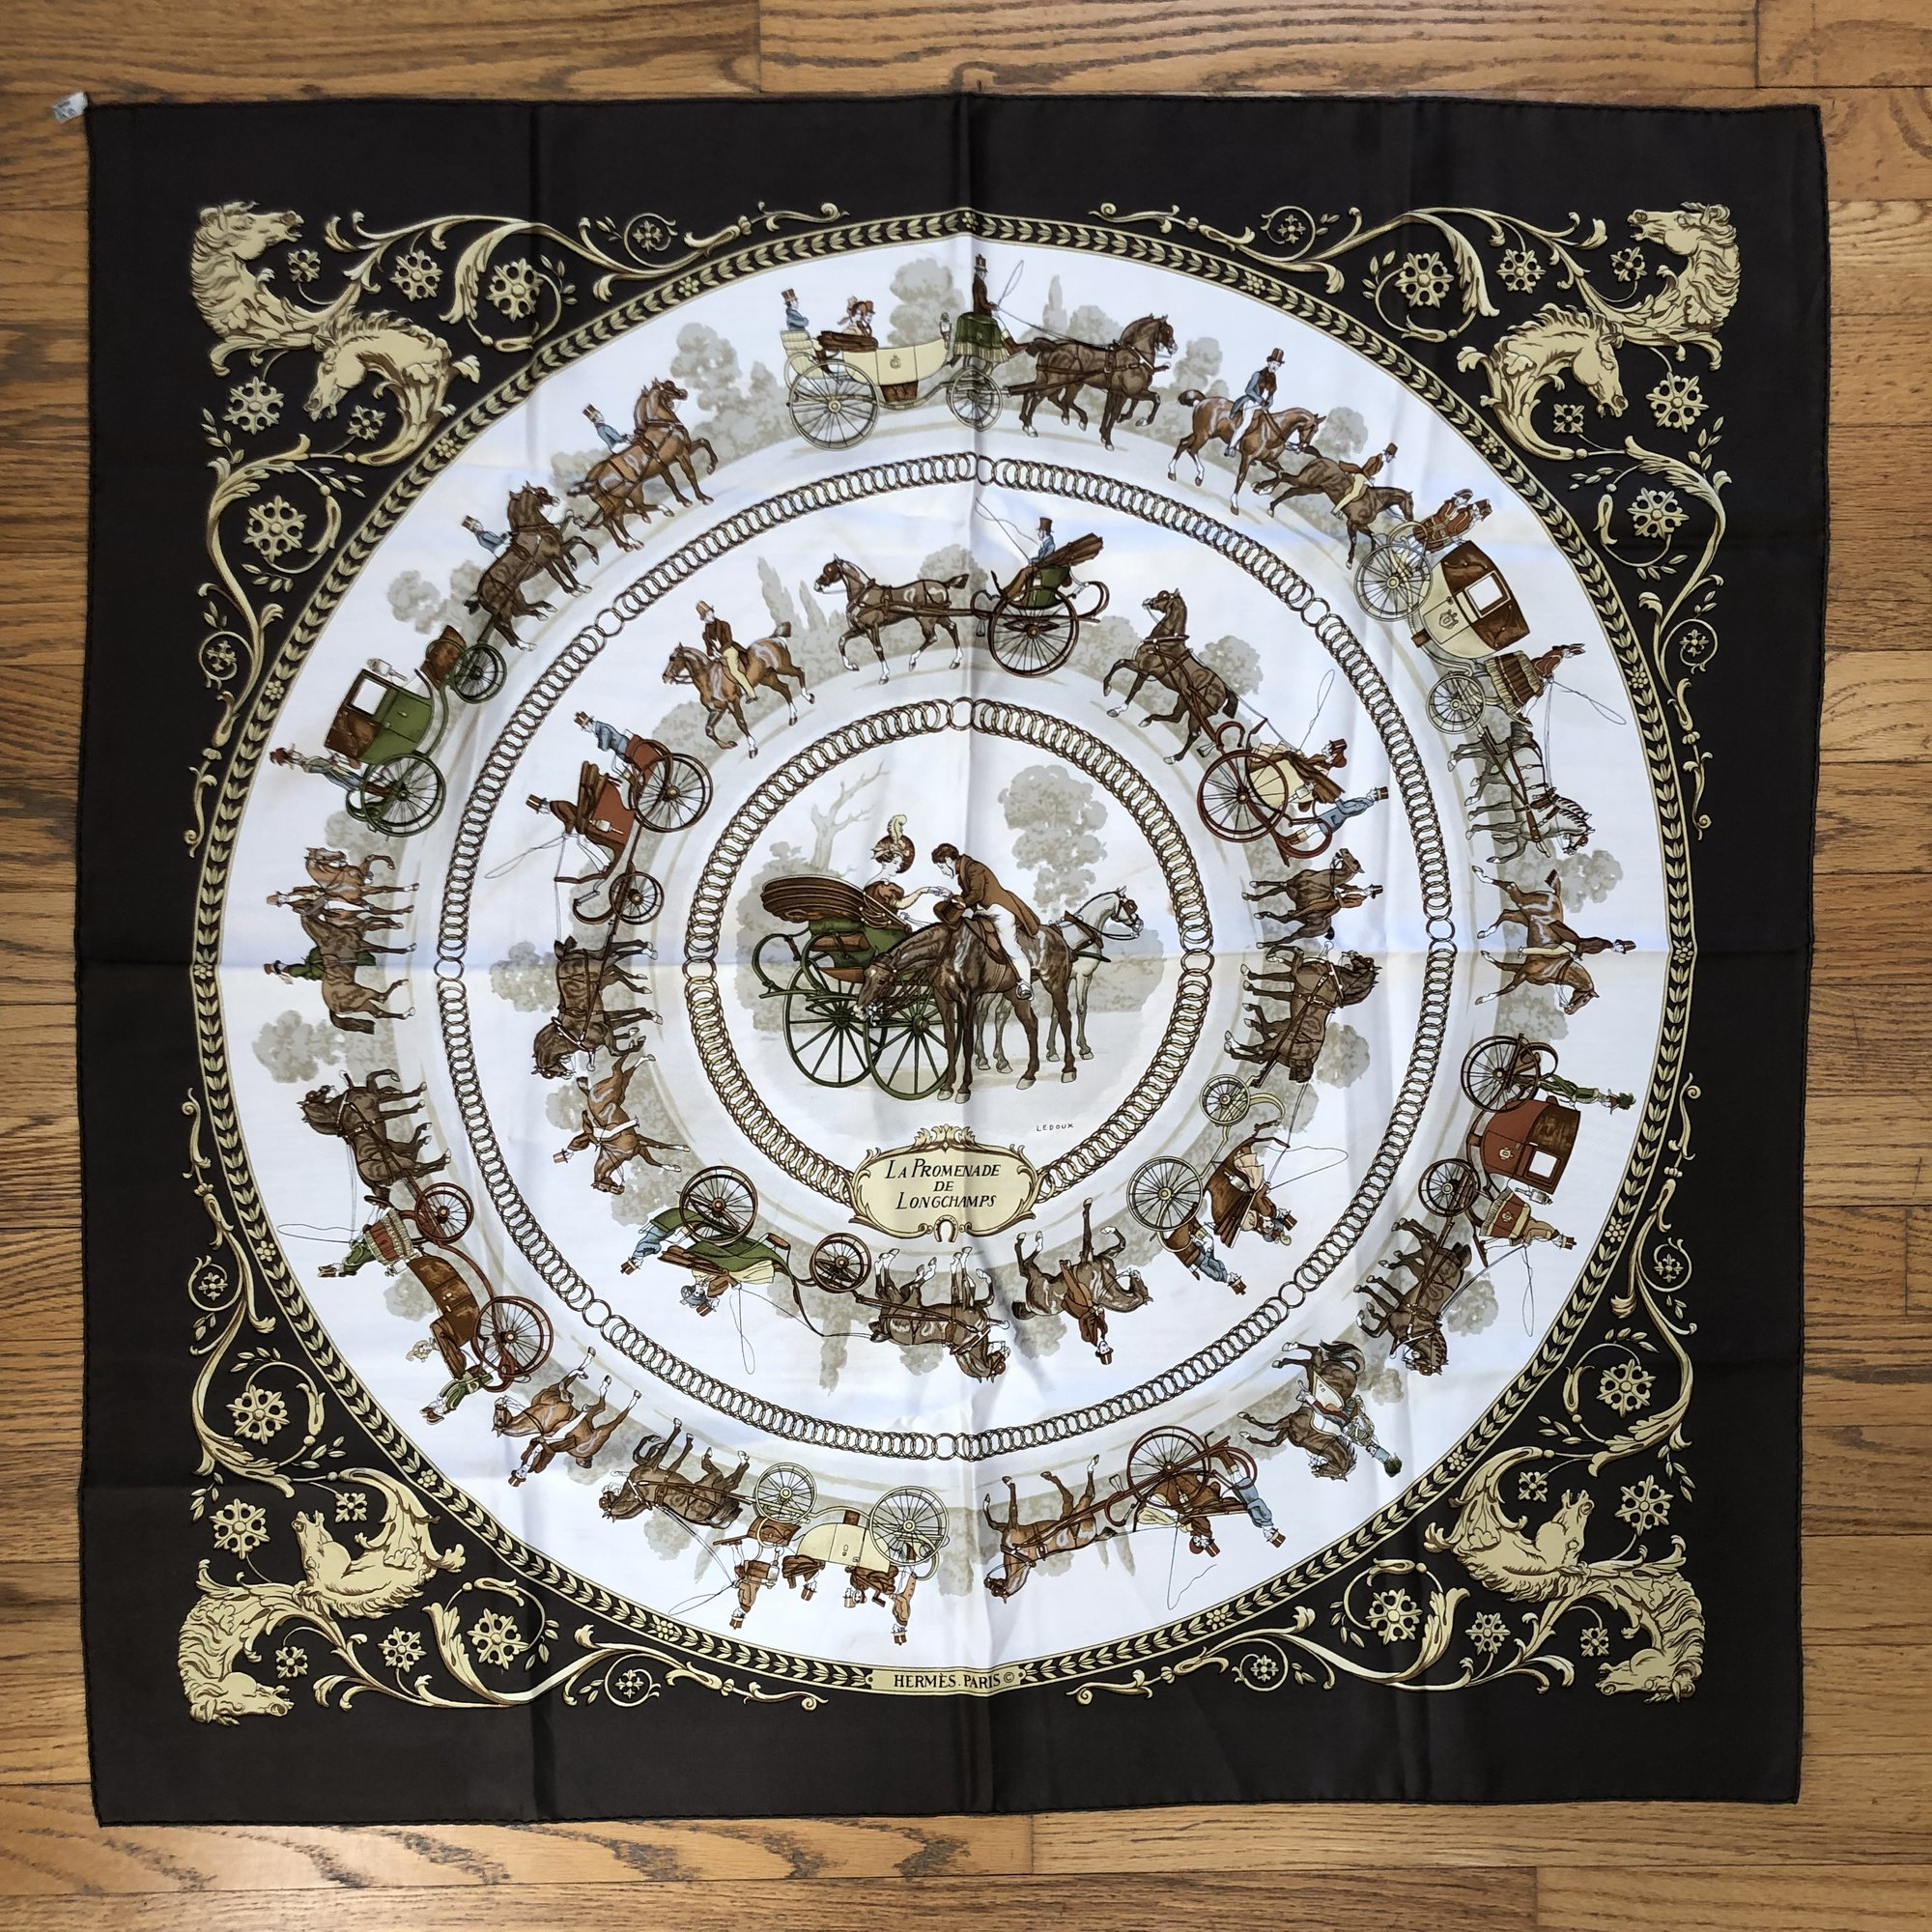 A lovely, pre-loved Vintage HERMES Scarf<br /> Design: Promenade De Longchamps<br /> Colors: Browns, Cream, Green, Gold<br /> Size: 45&quot; x 45&quot; (approximate dimensions, which will vary due to wear and cleaning)<br /> Condition: No tears. There are smudges/spots which appear as light brown.<br /> This is a pre-loved scarf, sold in &quot;AS IS&quot; condition. Please see the last pictures for examples of the light brown smudges/spots.